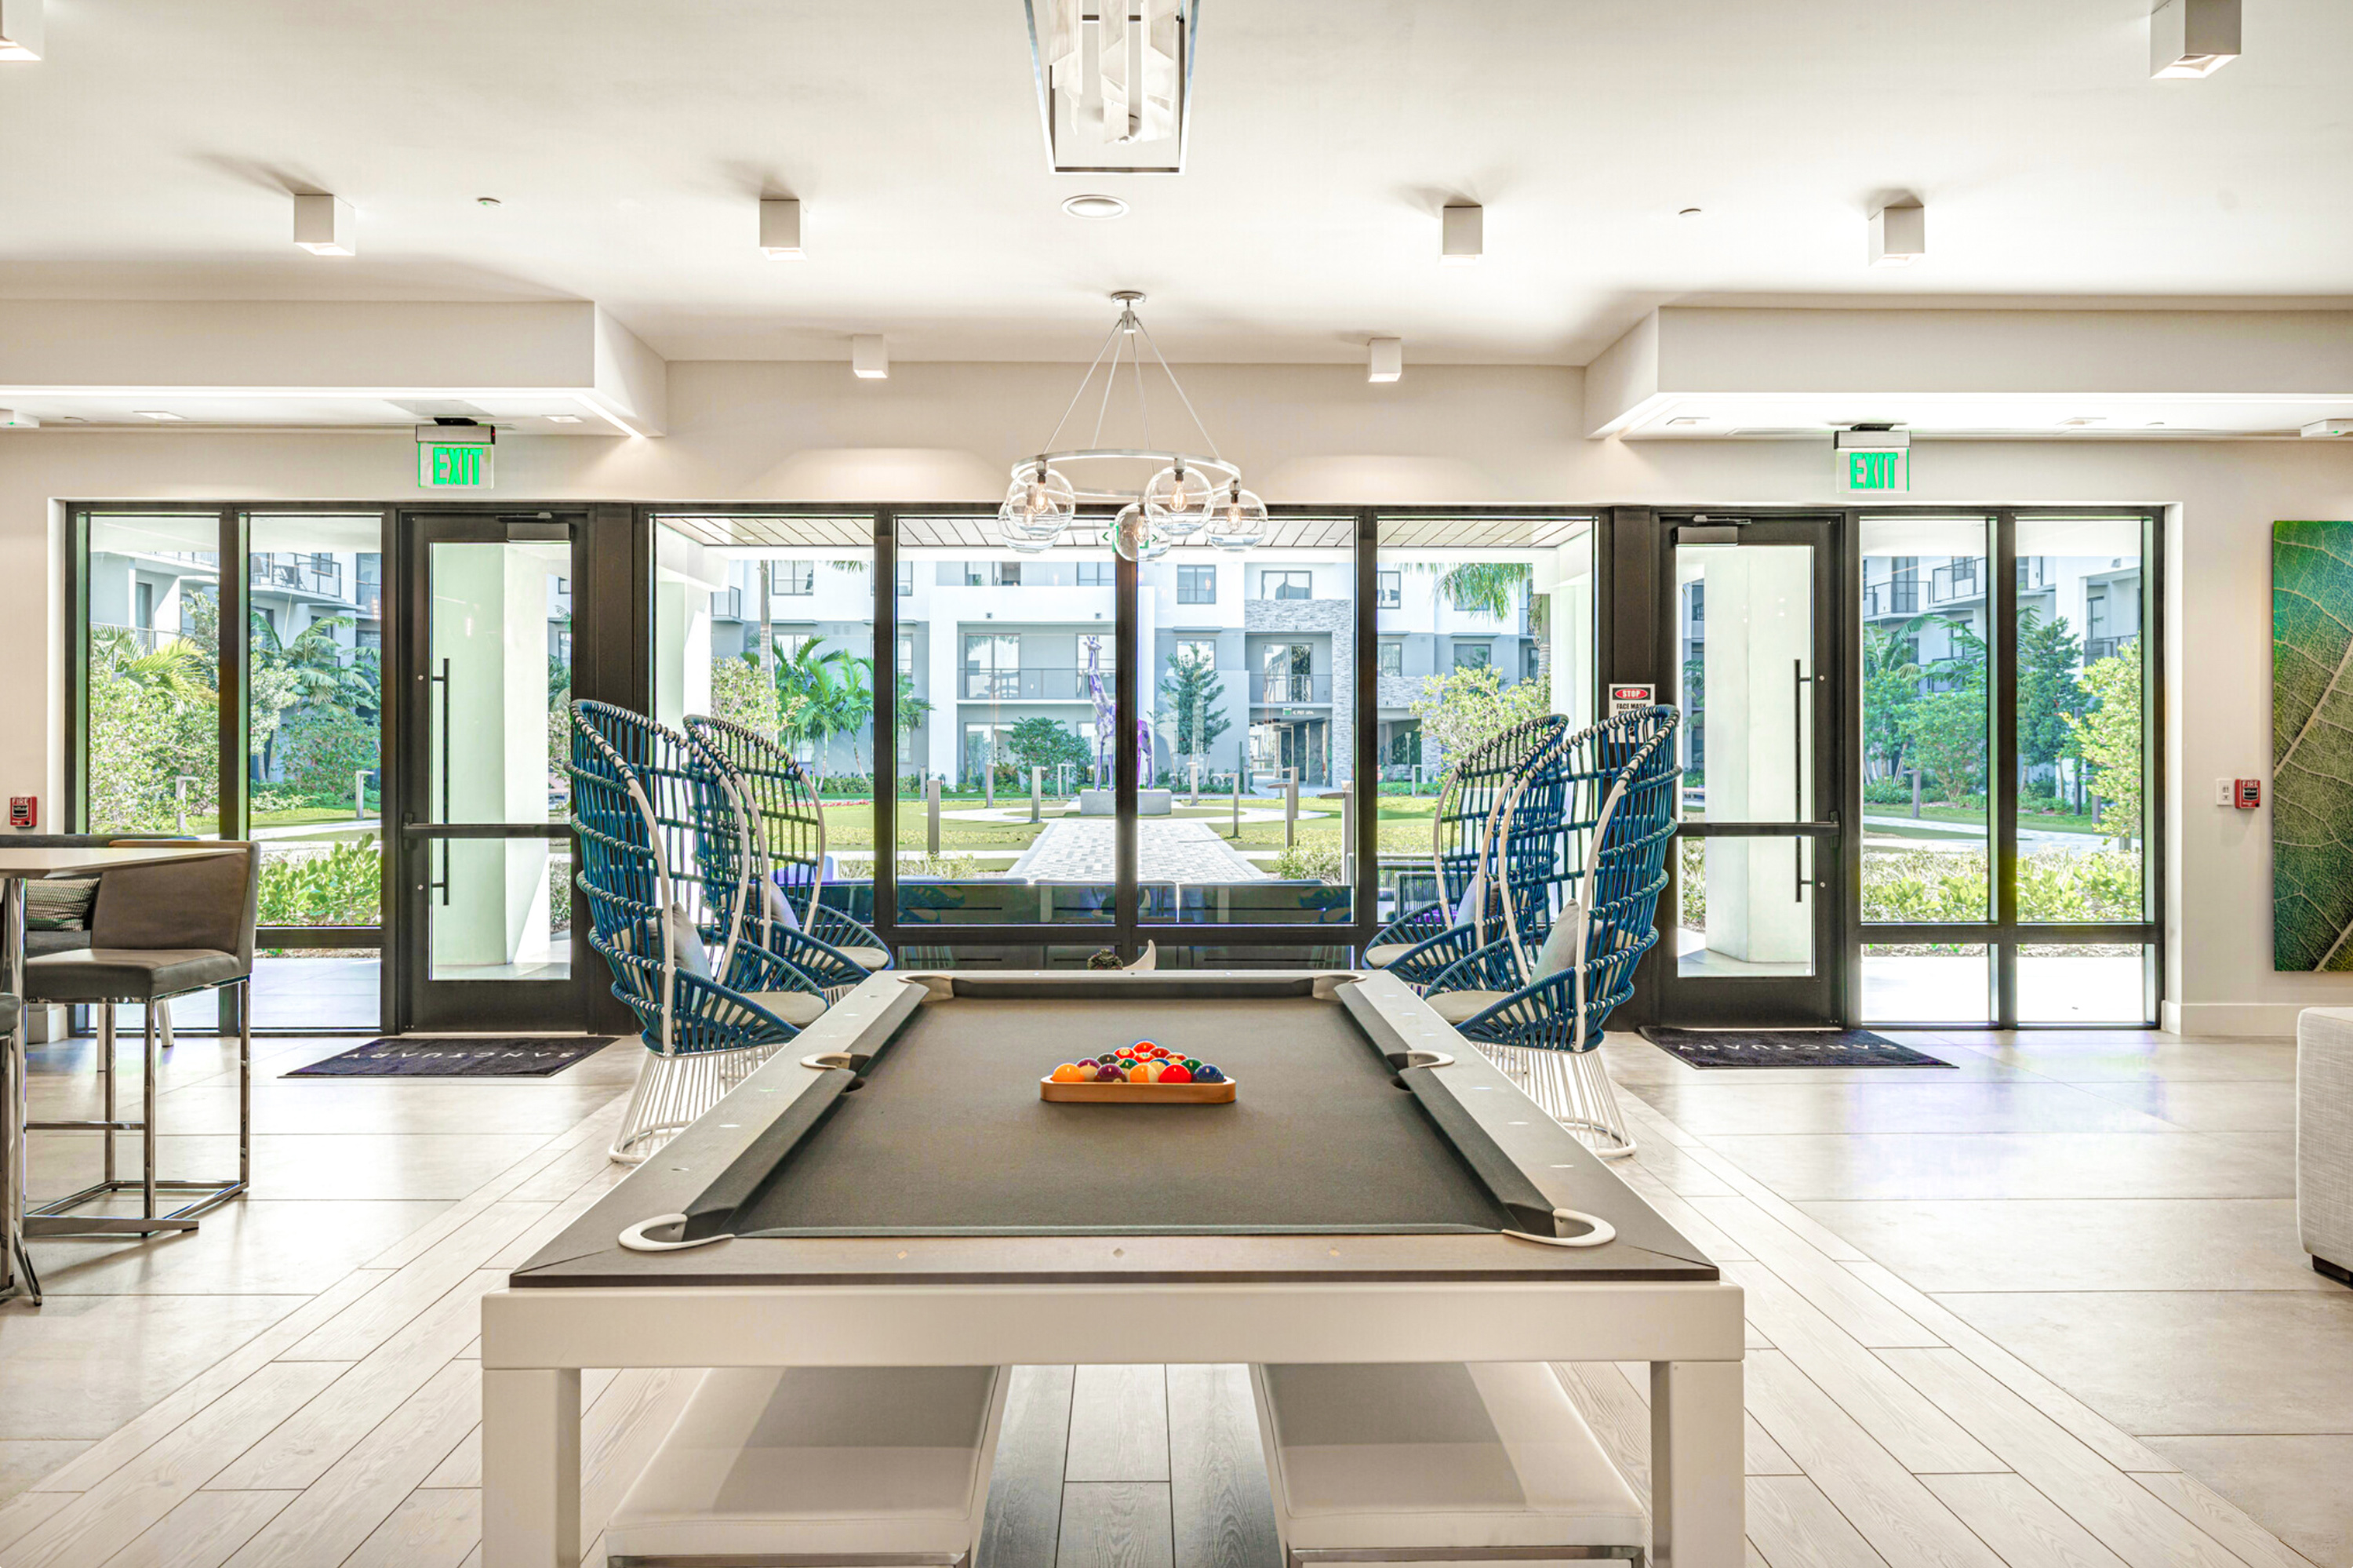 Pool table with courtyard view